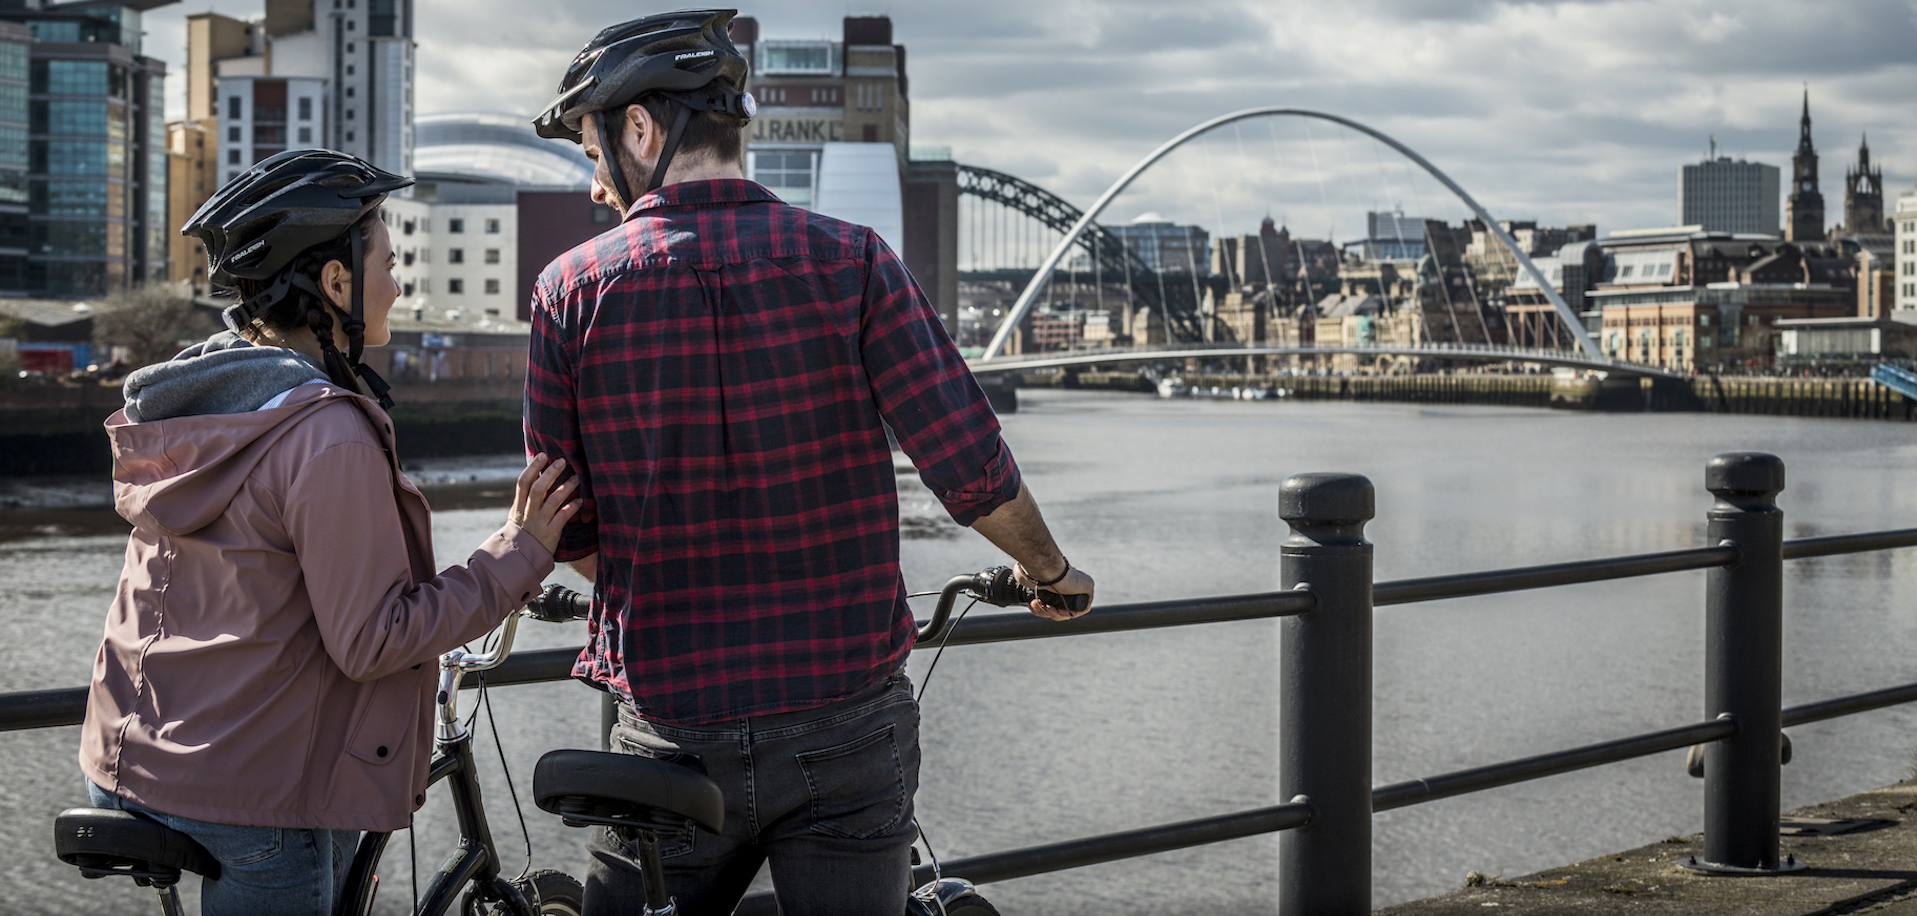 Cycling Routes blog c Visit Britain Michael Baister